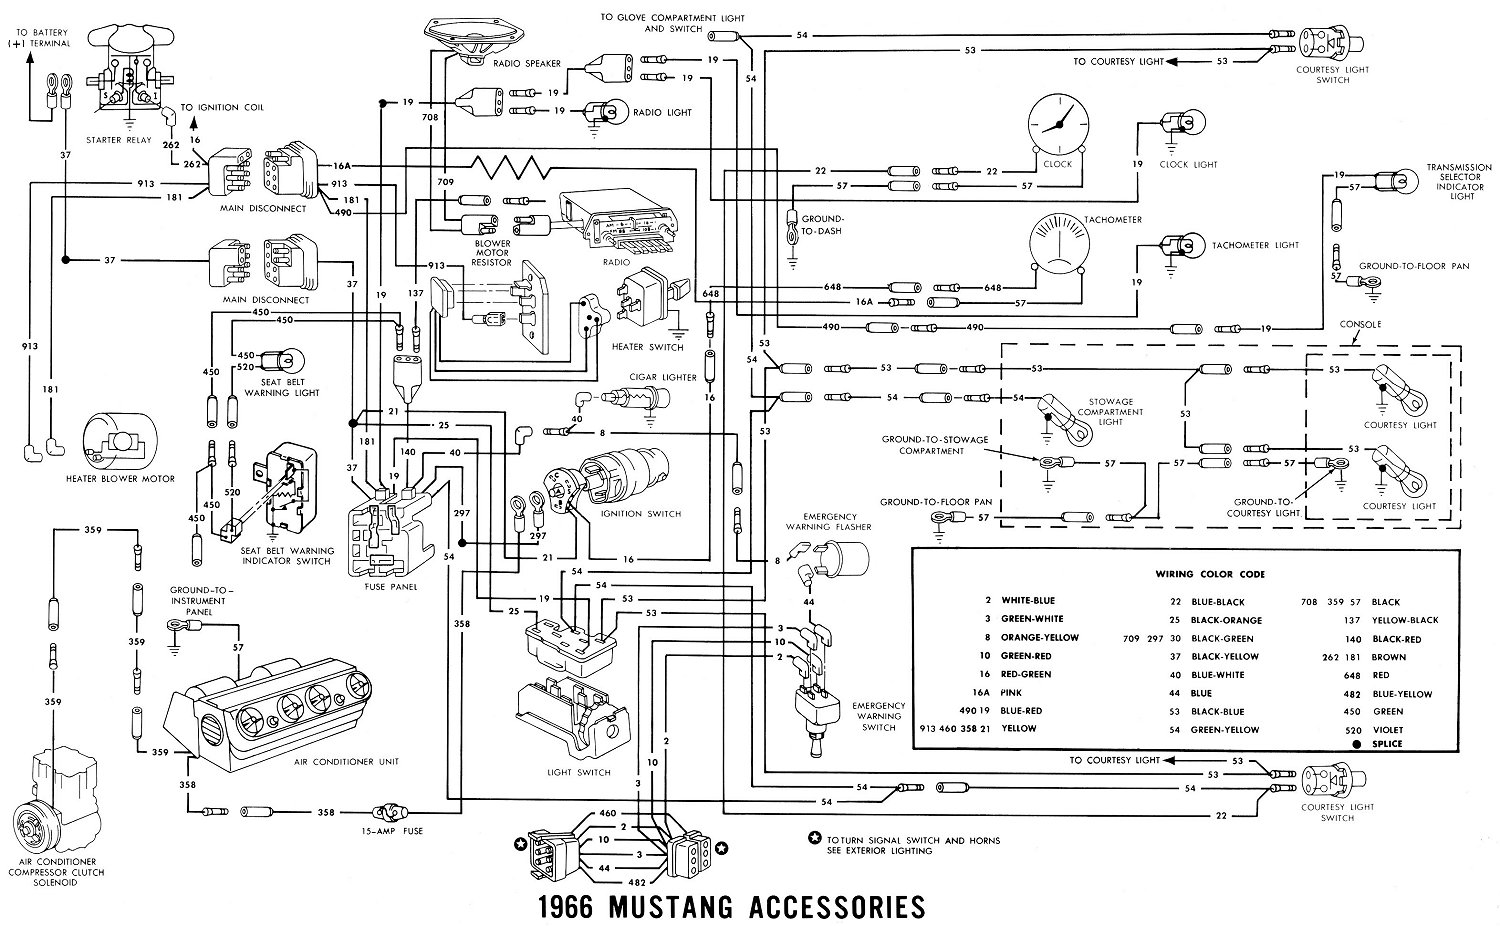 Mustang Wiring Diagram Schematic